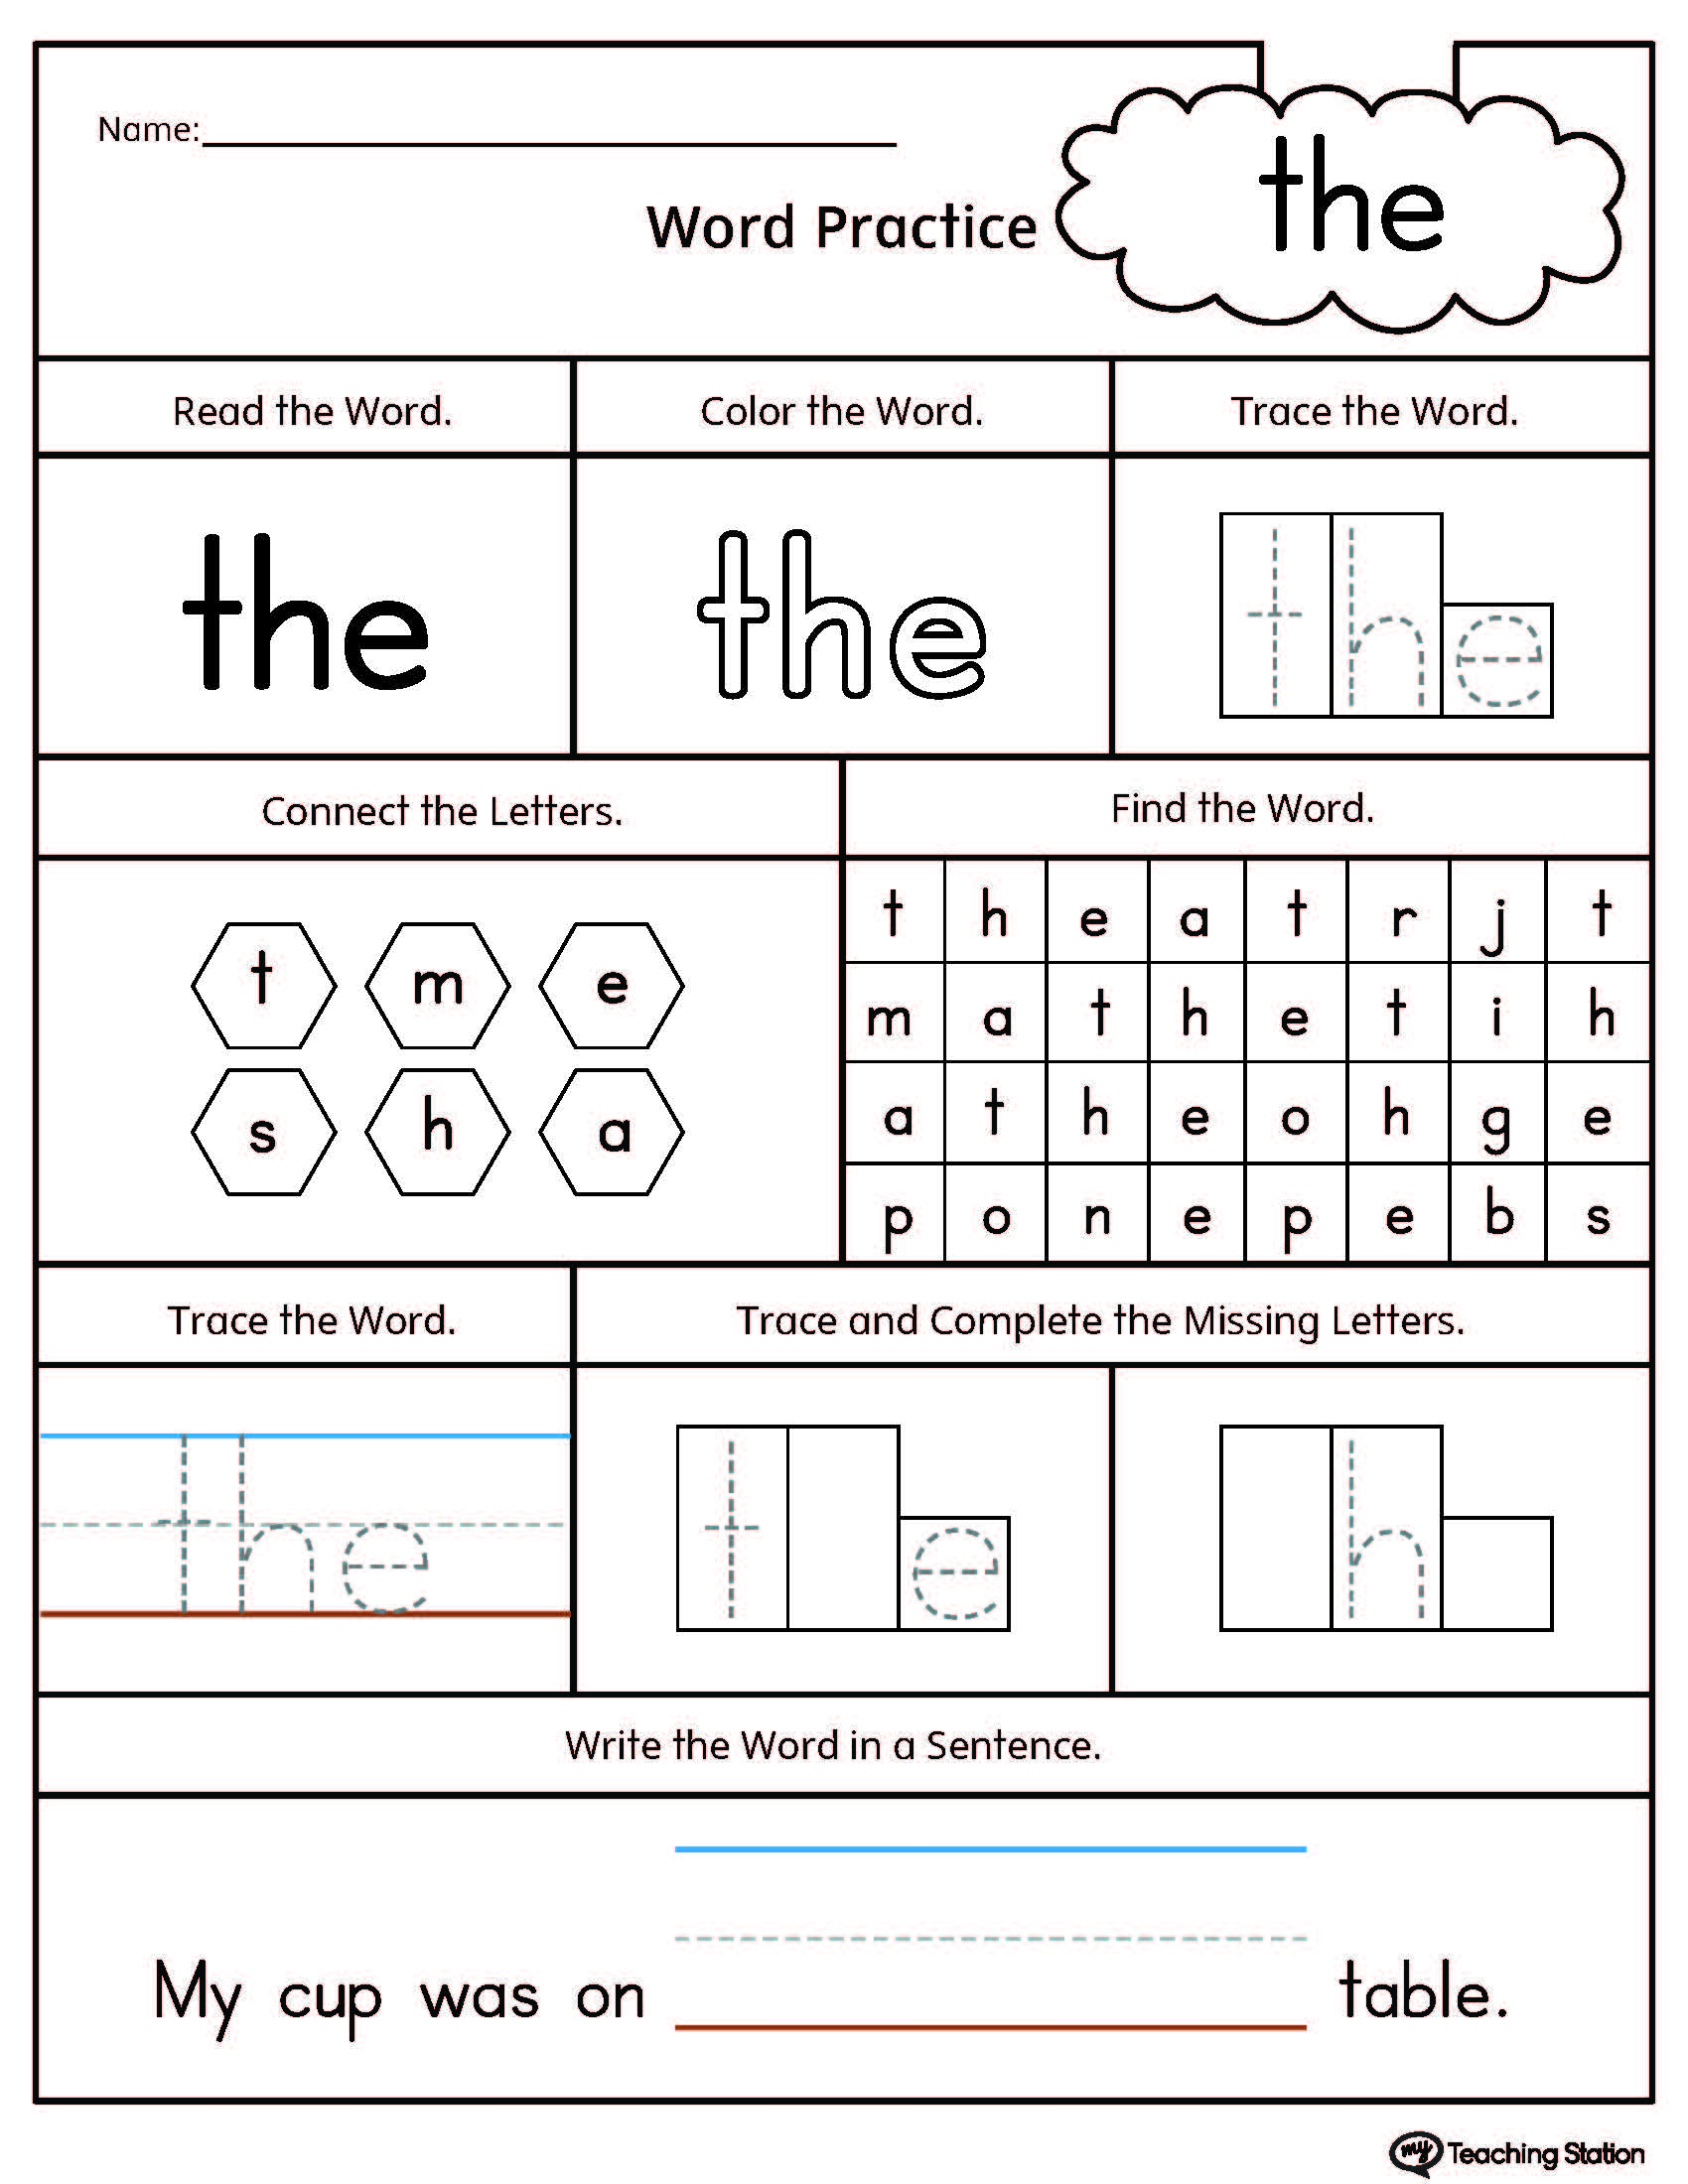 graphic relating to Printable Sight Word referred to as Sight Term the Printable Worksheet